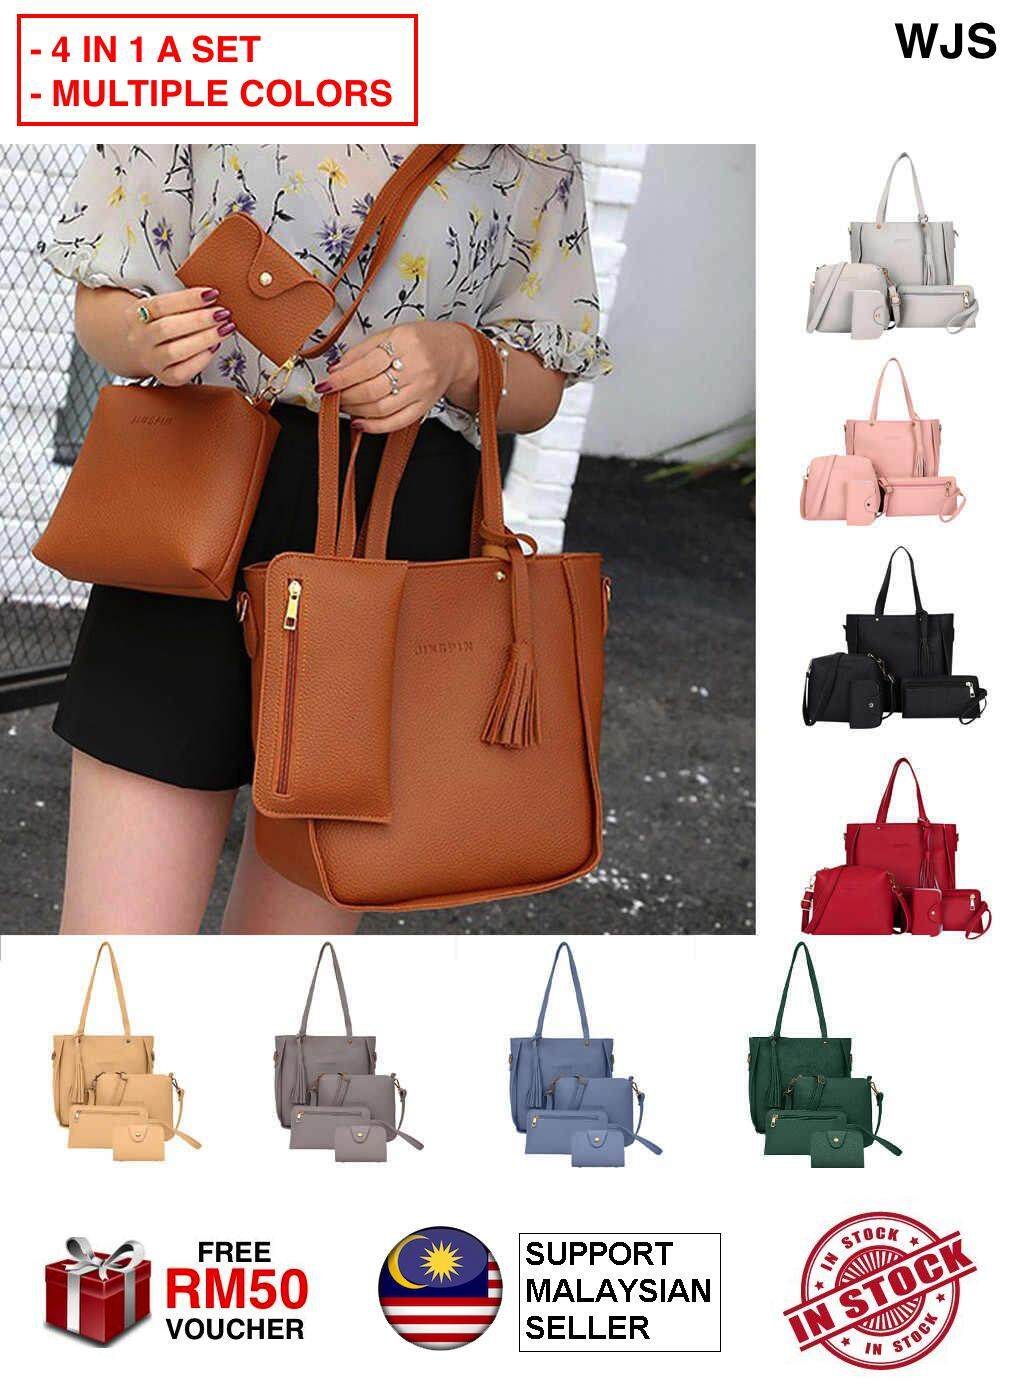 (4 IN A SET) WJS Quality 4pcs 4 pcs Sammi Shoulder Women Handbag Tote Bag Sling Beg Tangan Bags Purse Clutch Pouch Ladies Hand Bag Casual Dinner Cantik Girl Raya Korea Japan Ready Stock MULTICOLOR [FREE RM 50 VOUCHER]